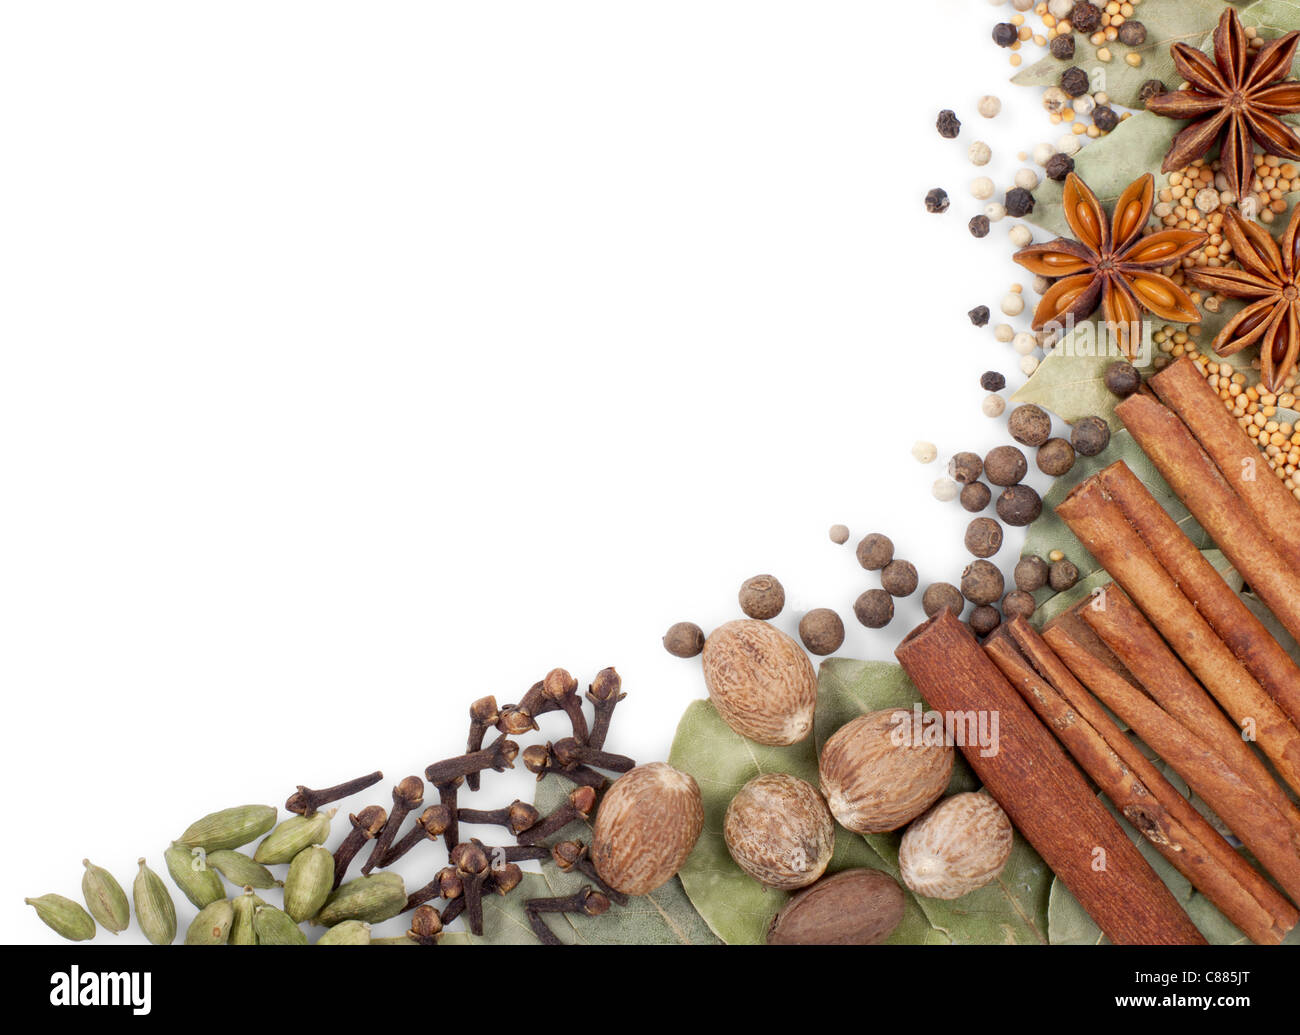 Background of different spices over white - Stock Image